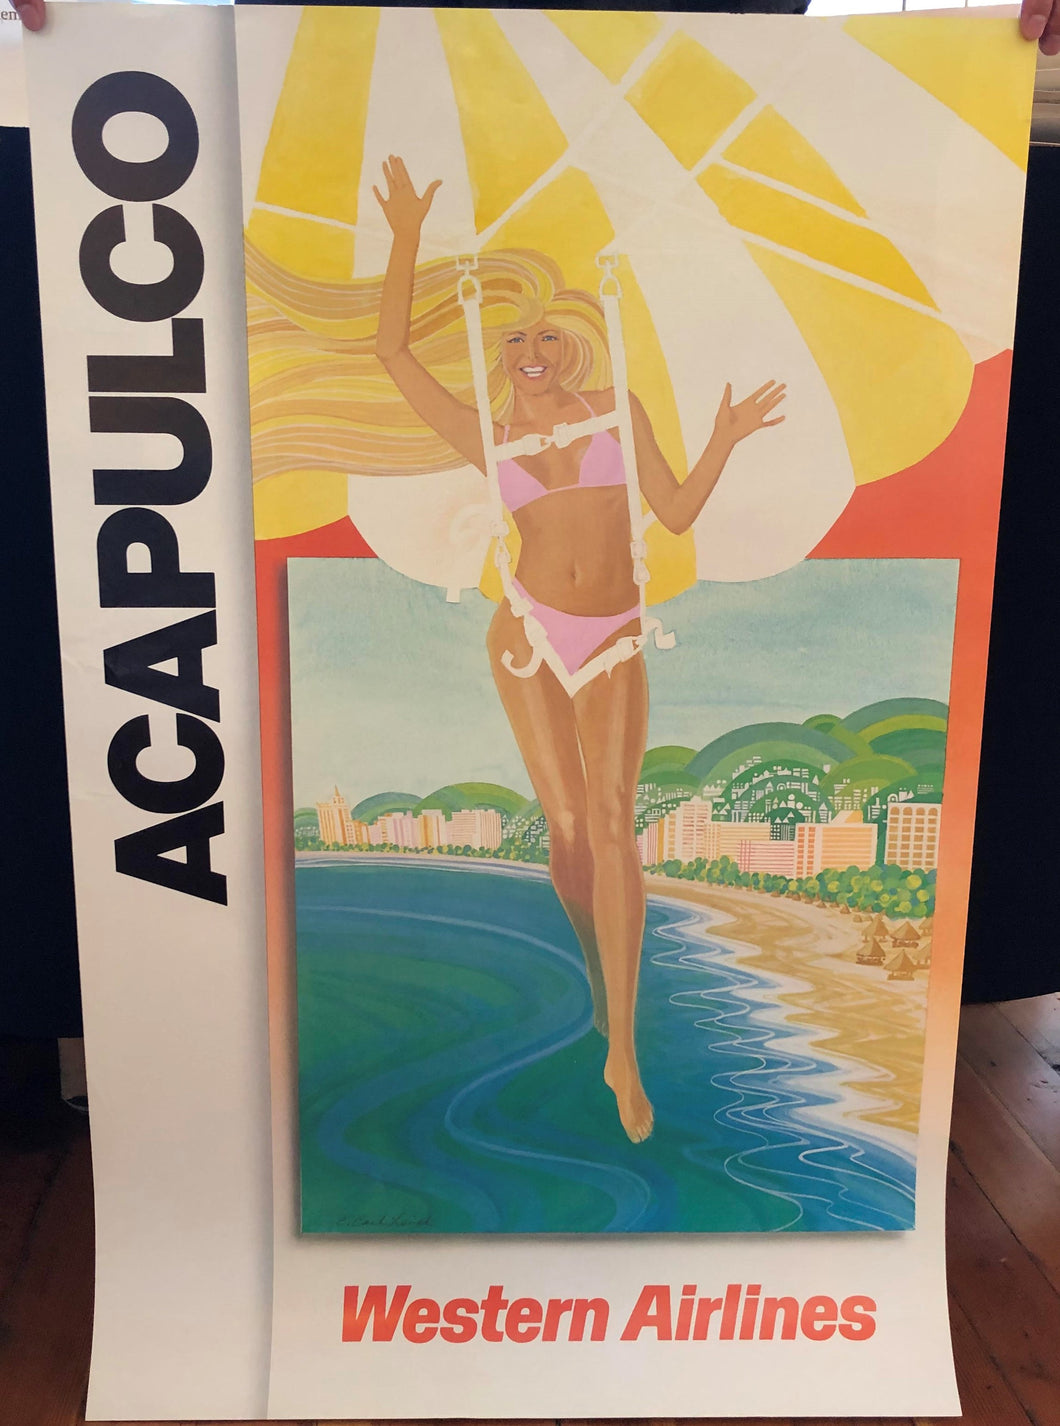 Acapulco - Western Airlines